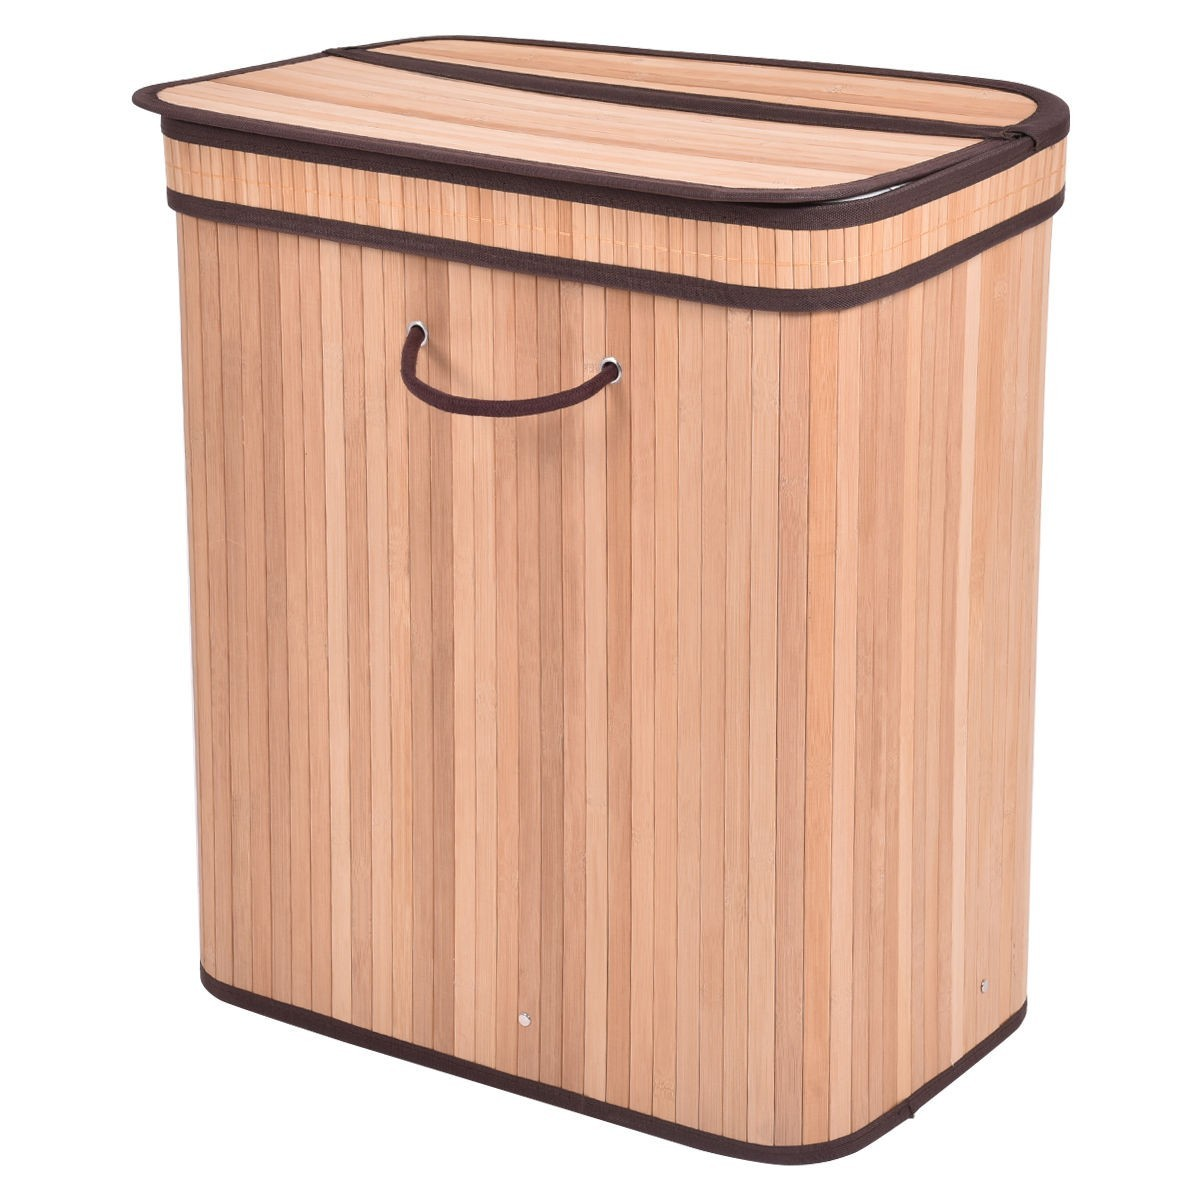 Large Rect Bamboo Laundry Hamper Basket with Lid - Natural Wood Brown